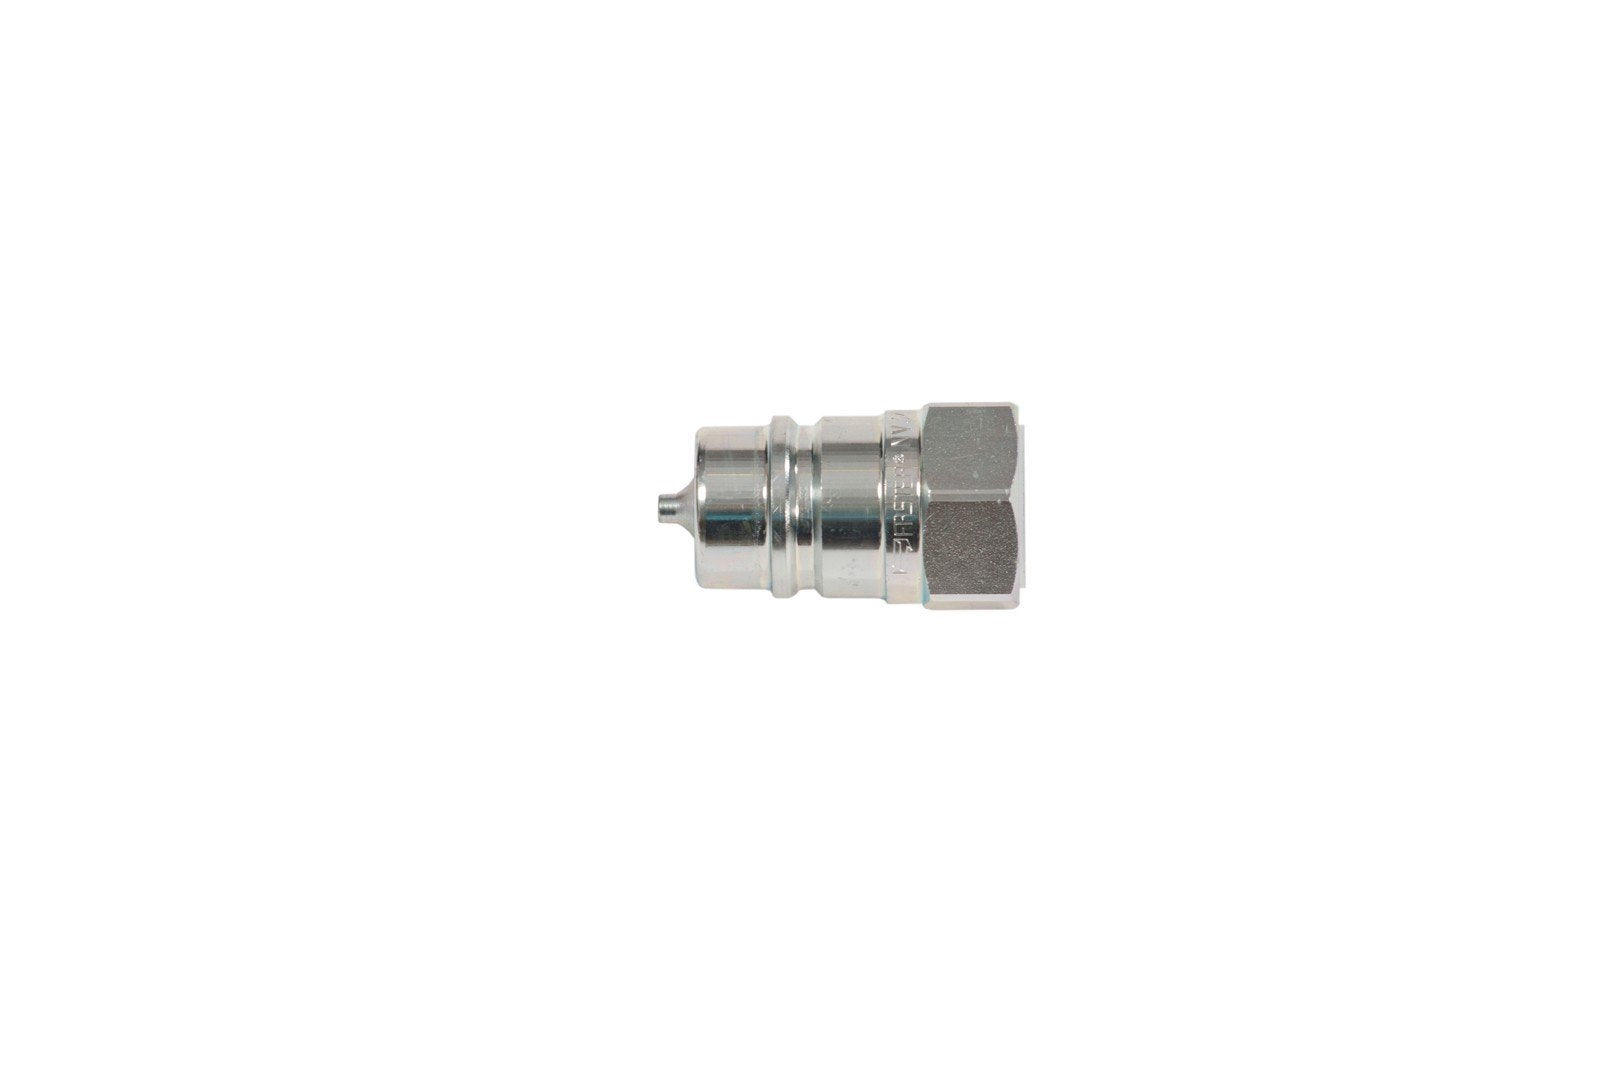 F96-0502-005 - Quick disconnect coupling male 3/4""